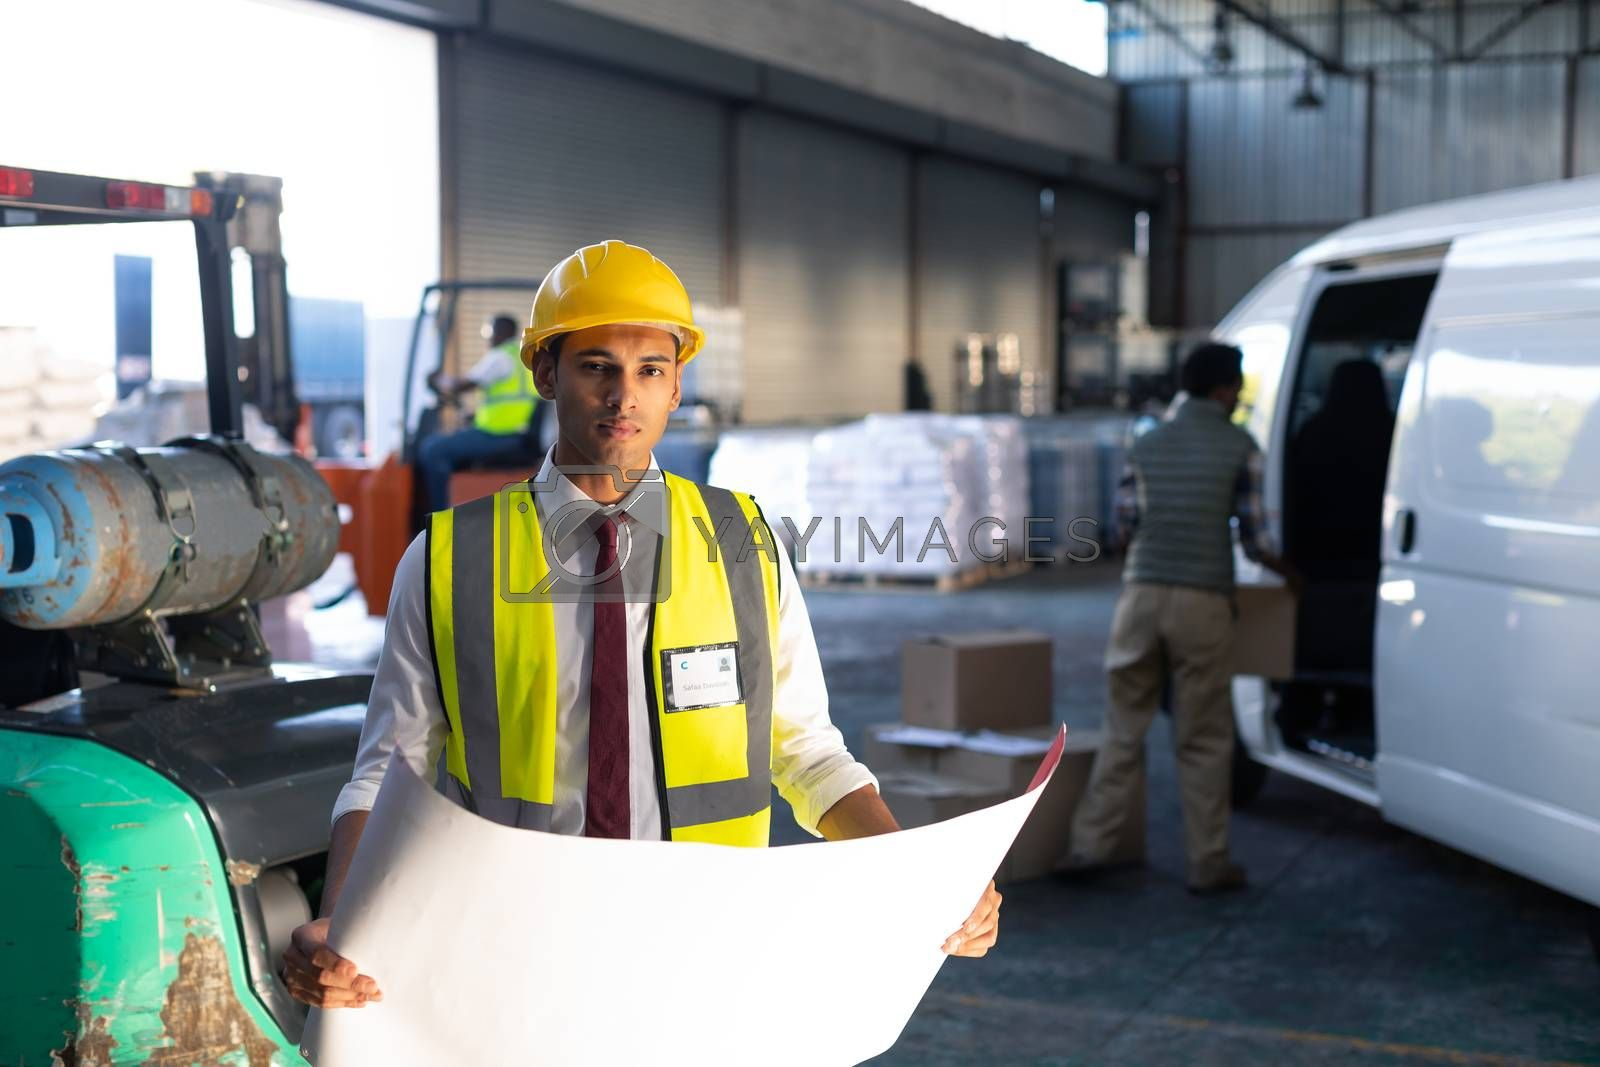 Portrait of young Caucasian male supervisor looking at blueprint in warehouse. This is a freight transportation and distribution warehouse. Industrial and industrial workers concept